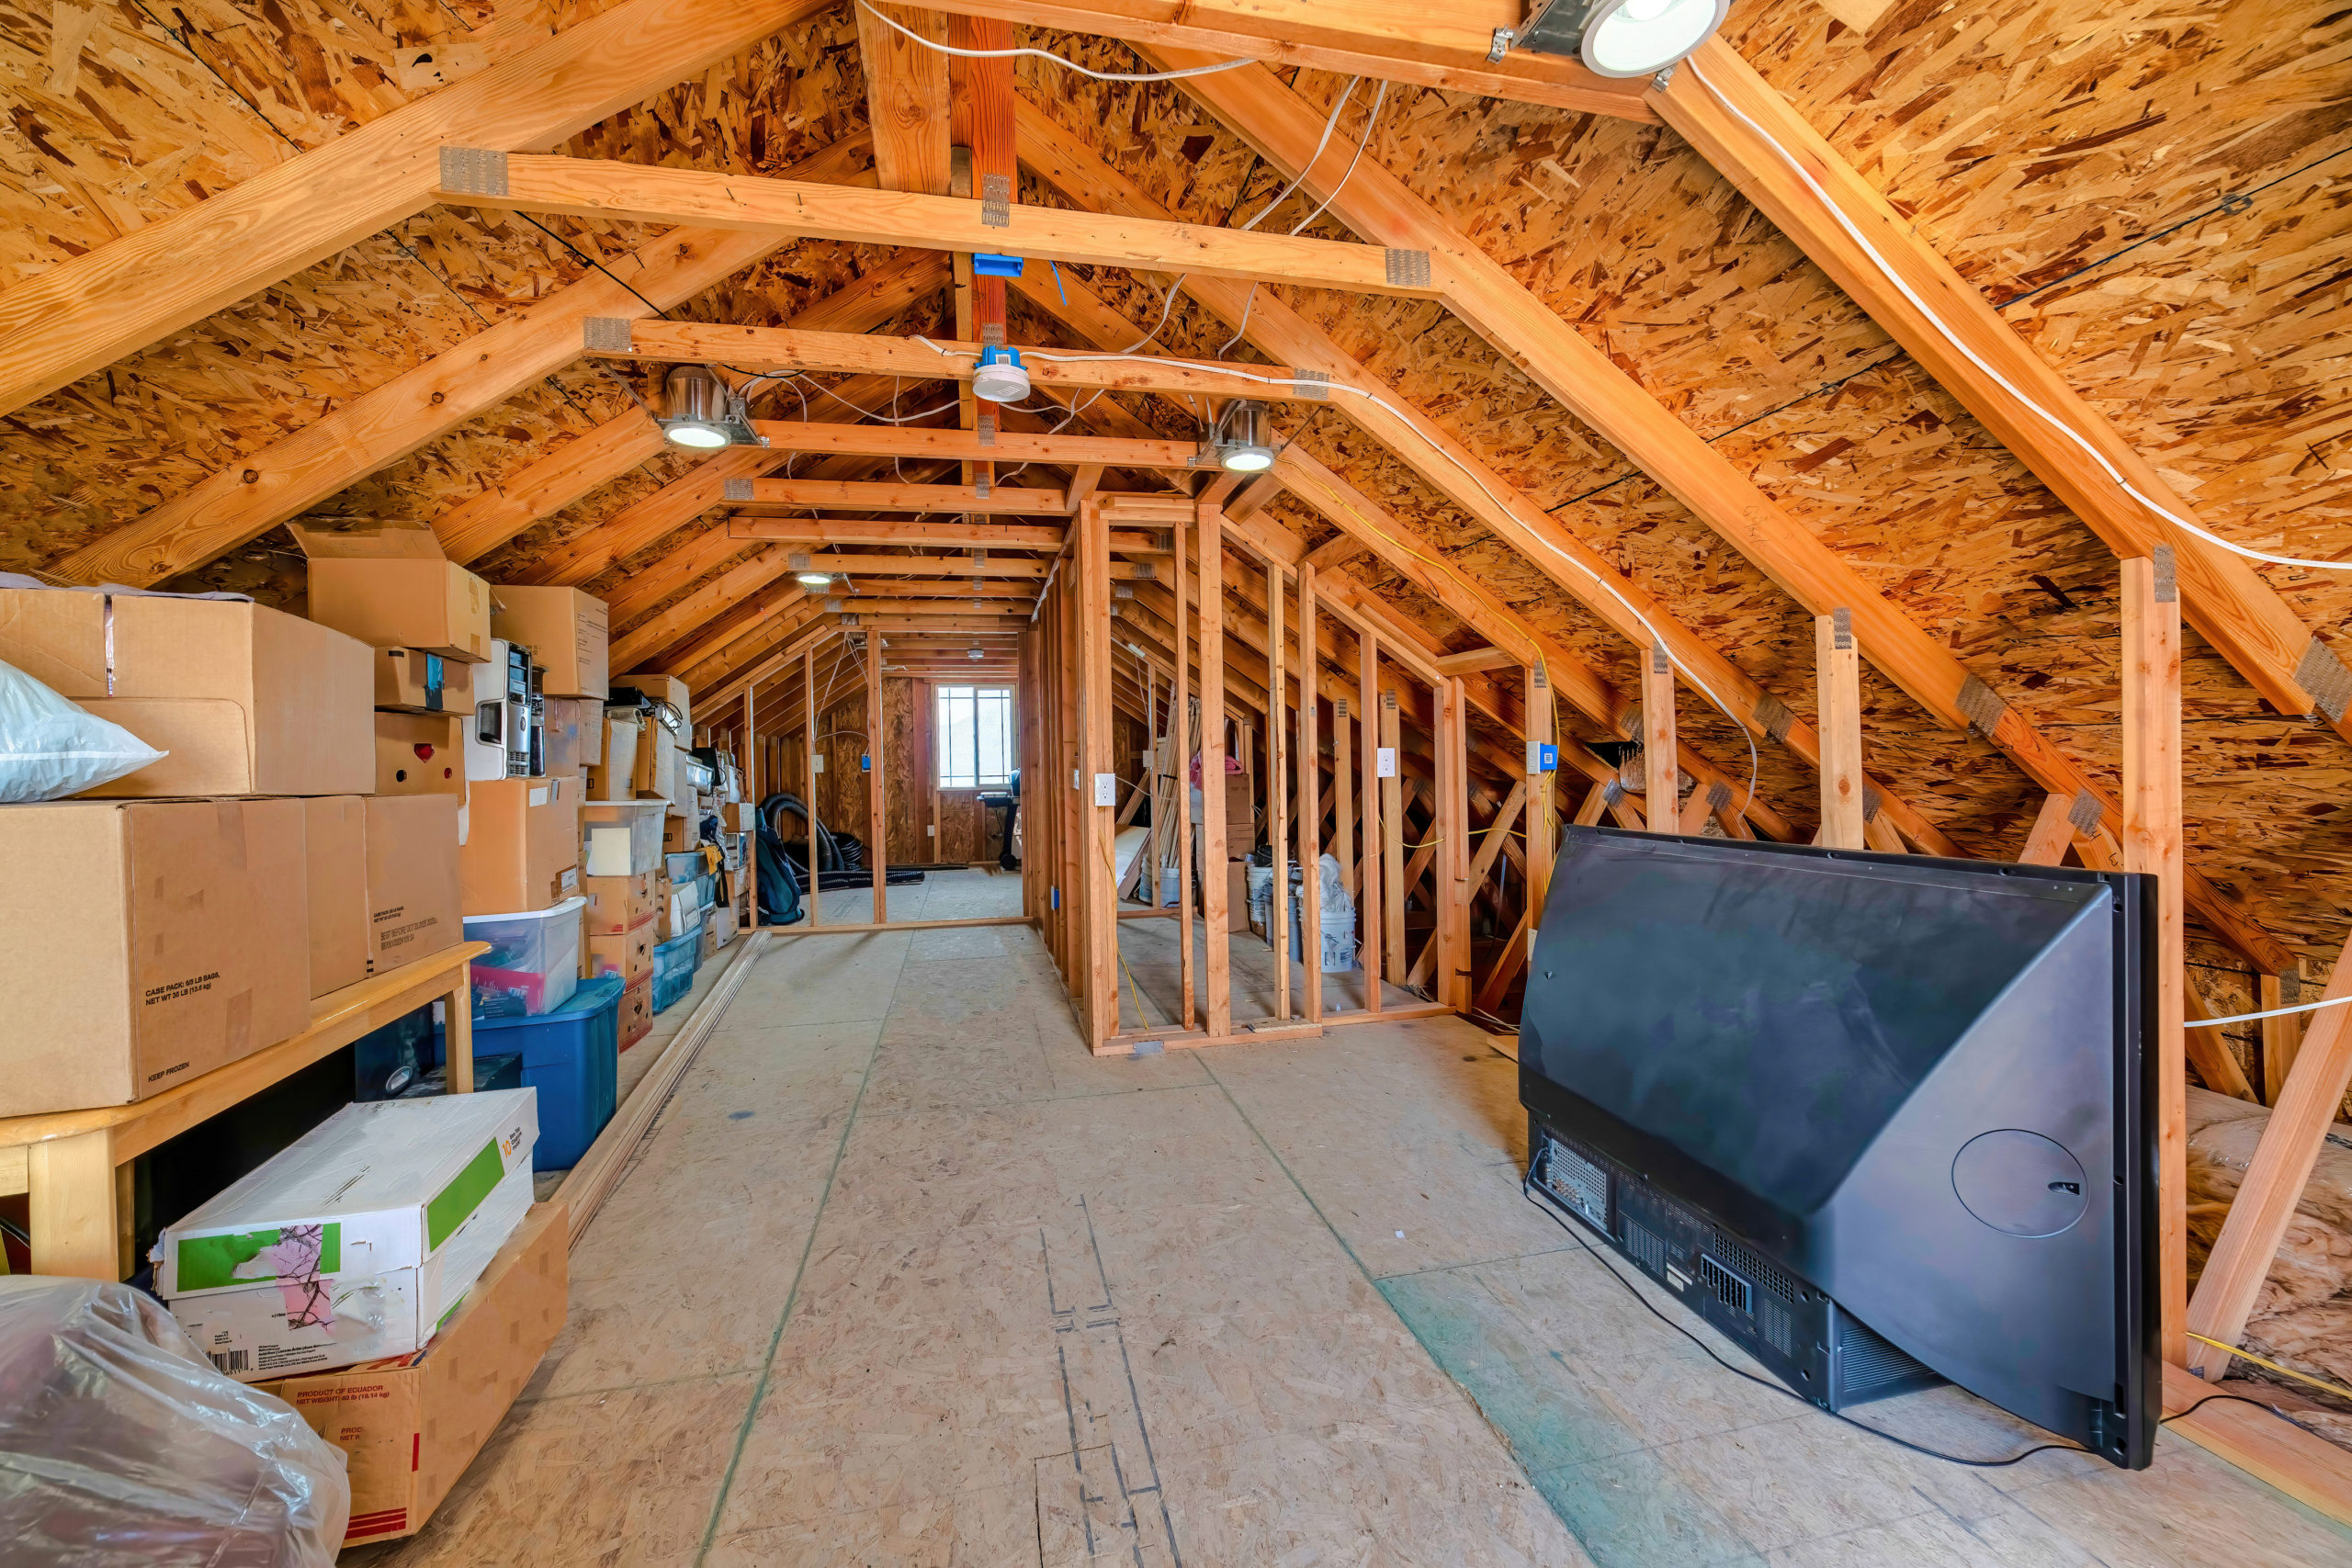 The Best Way to Remodel Your Attic into a Functional Storage Space